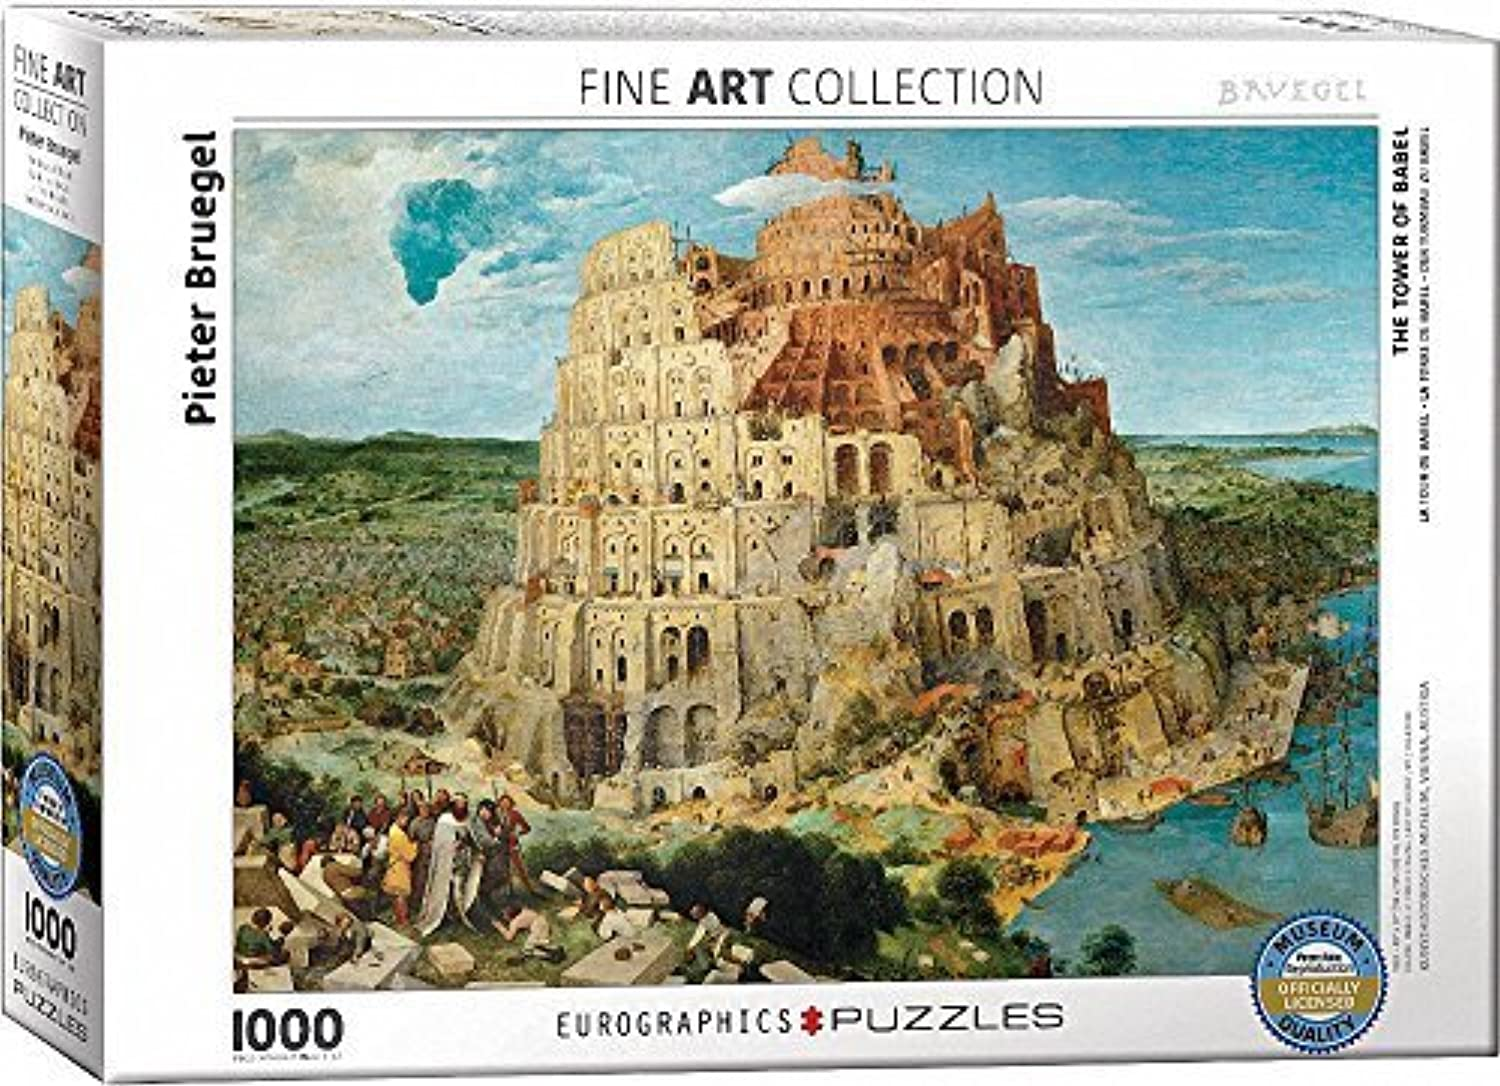 EuroGraphics The Tower of Babel by Pieter Brueghel (1000 Piece) Puzzle by EuroGraphics